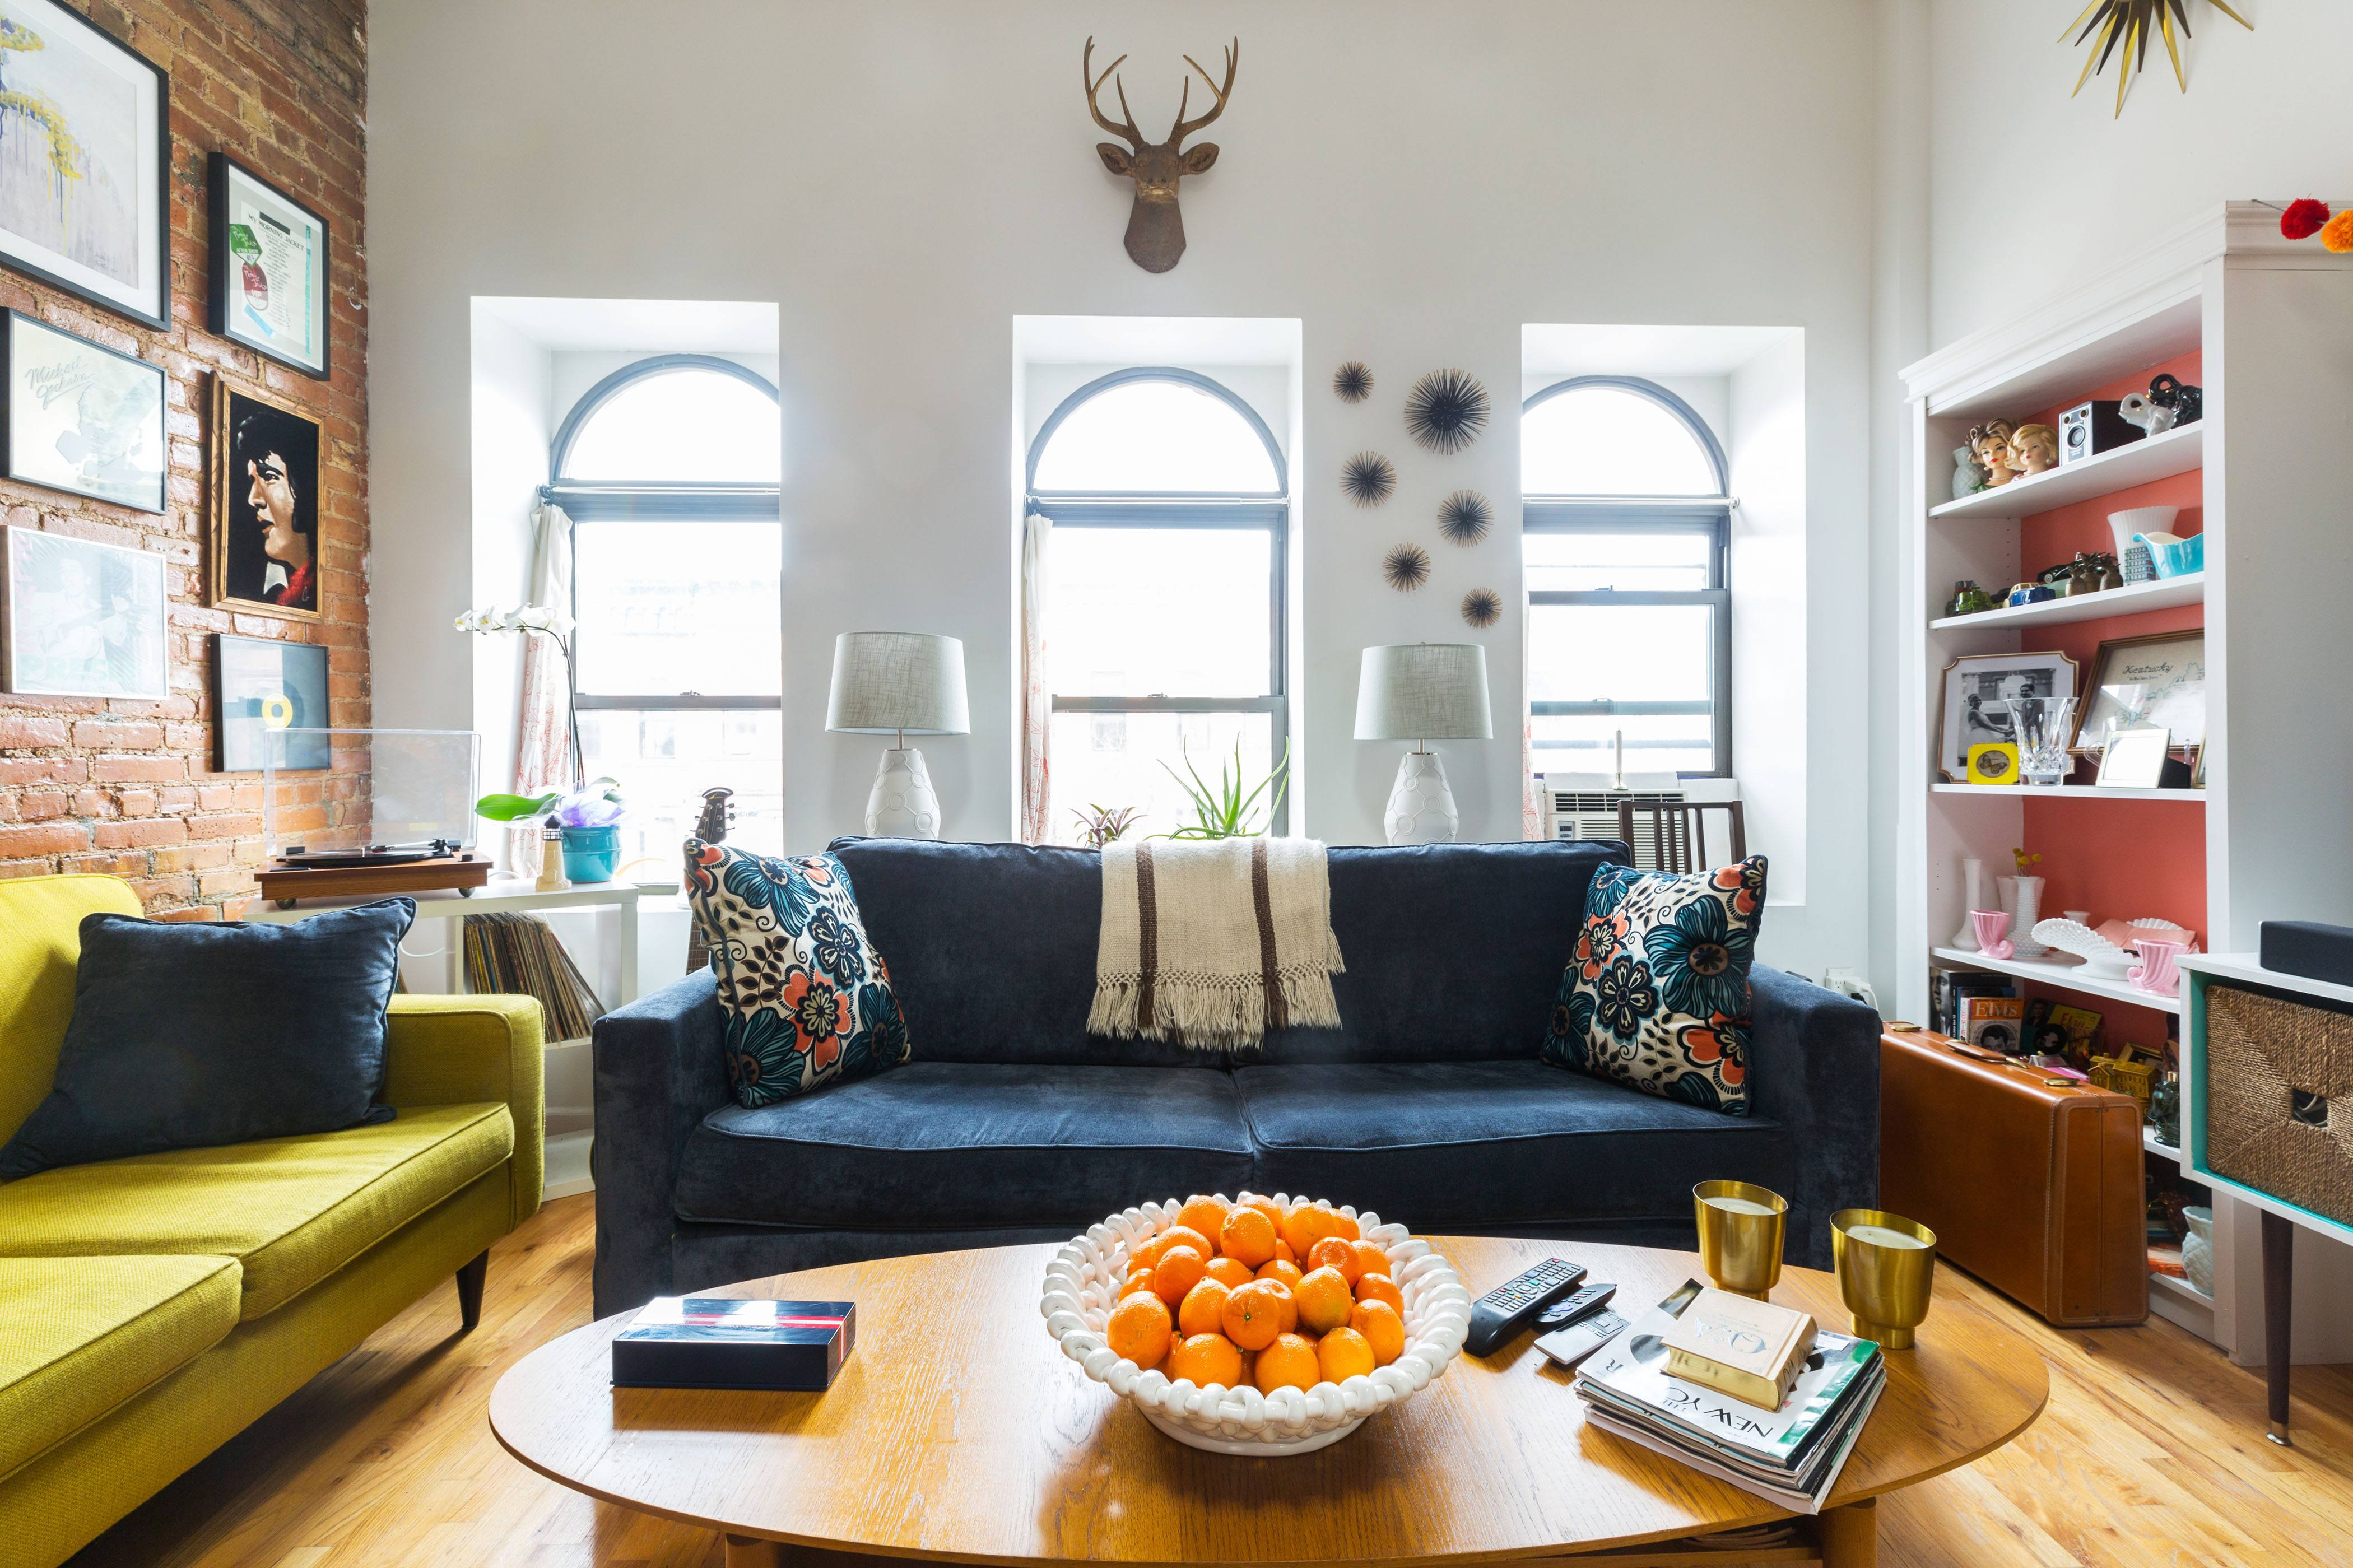 Our 900sqft: Native New Yorkers Aria and John open up their retro ...